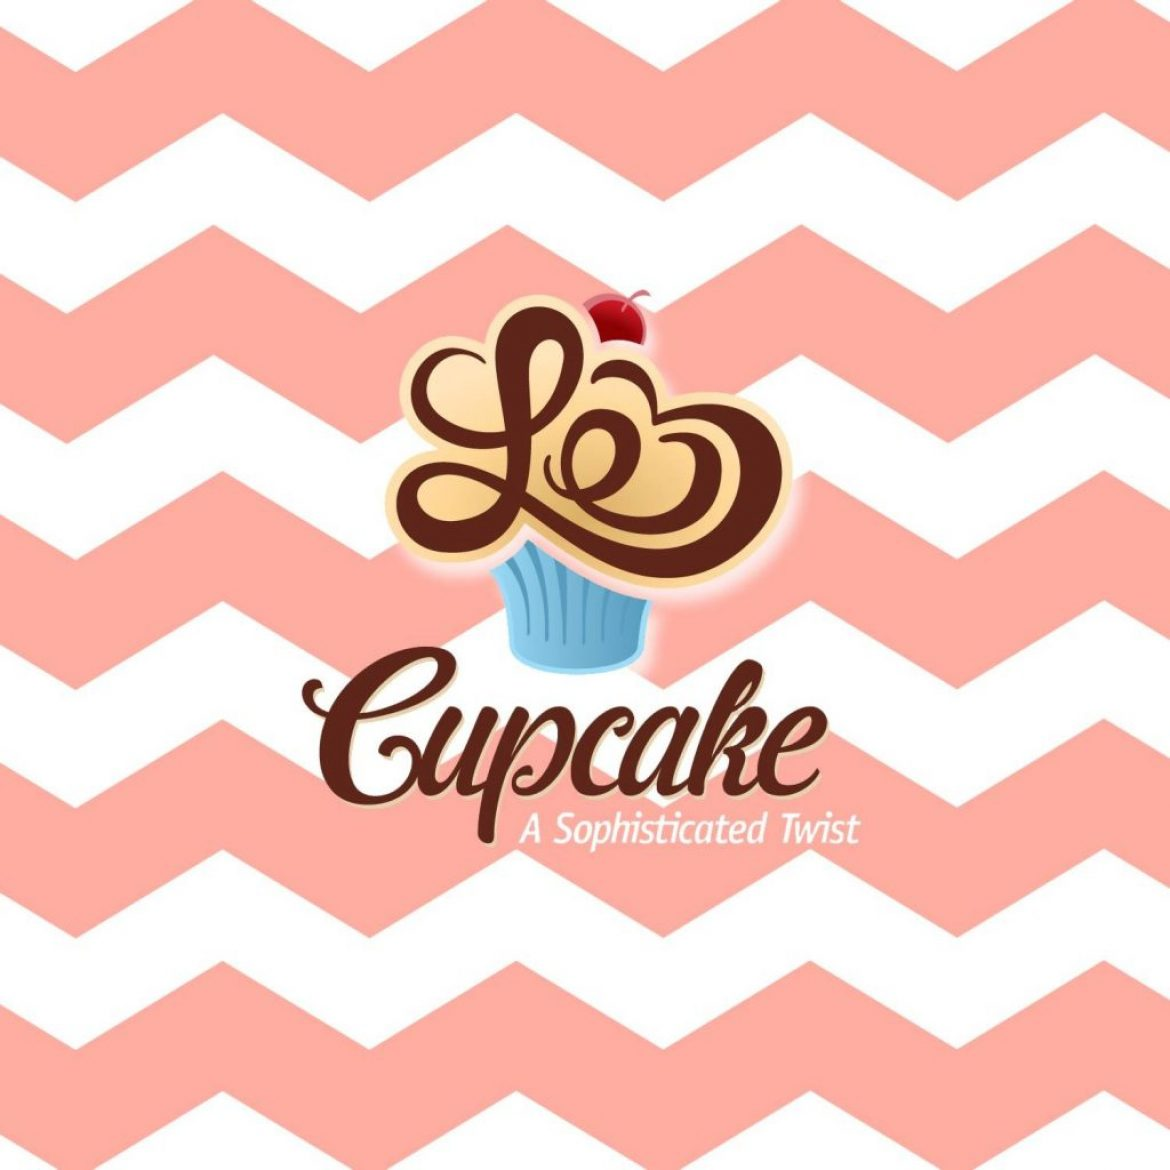 Interview with a Lincoln Wedding Vendor| Le Cupcake